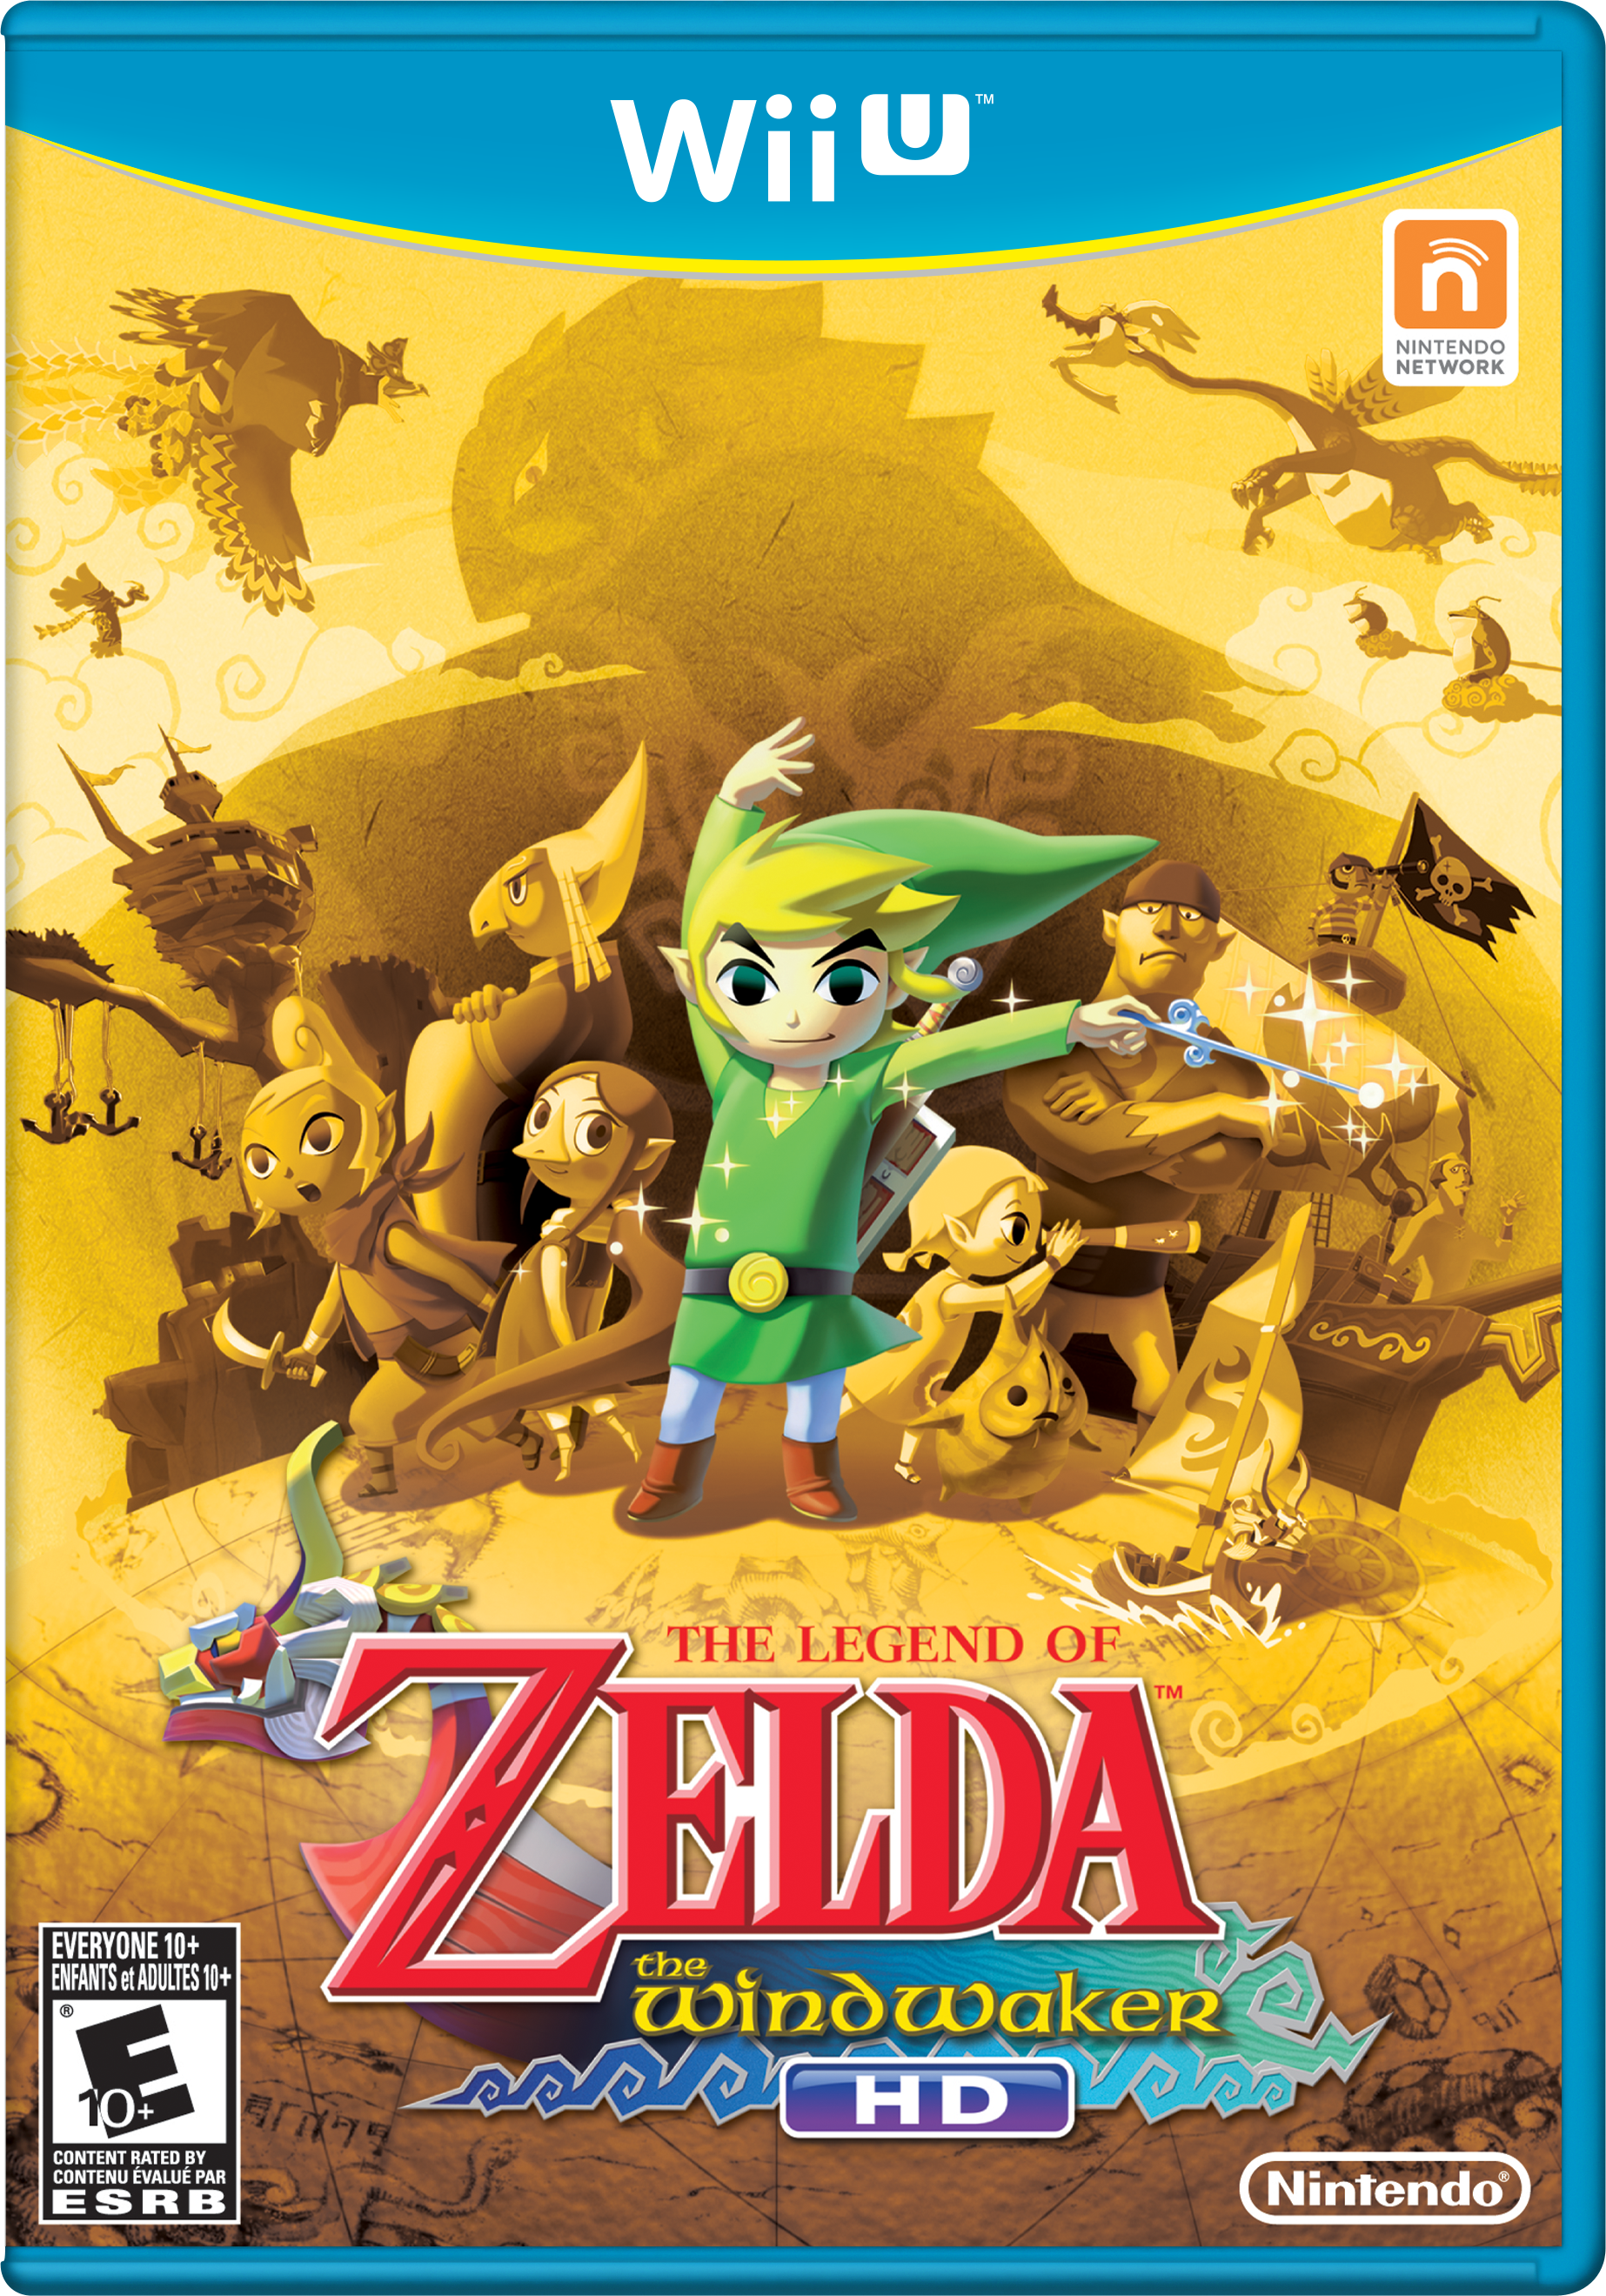 Nintendo Believes That Wind Waker HD Can Be A Wii U System